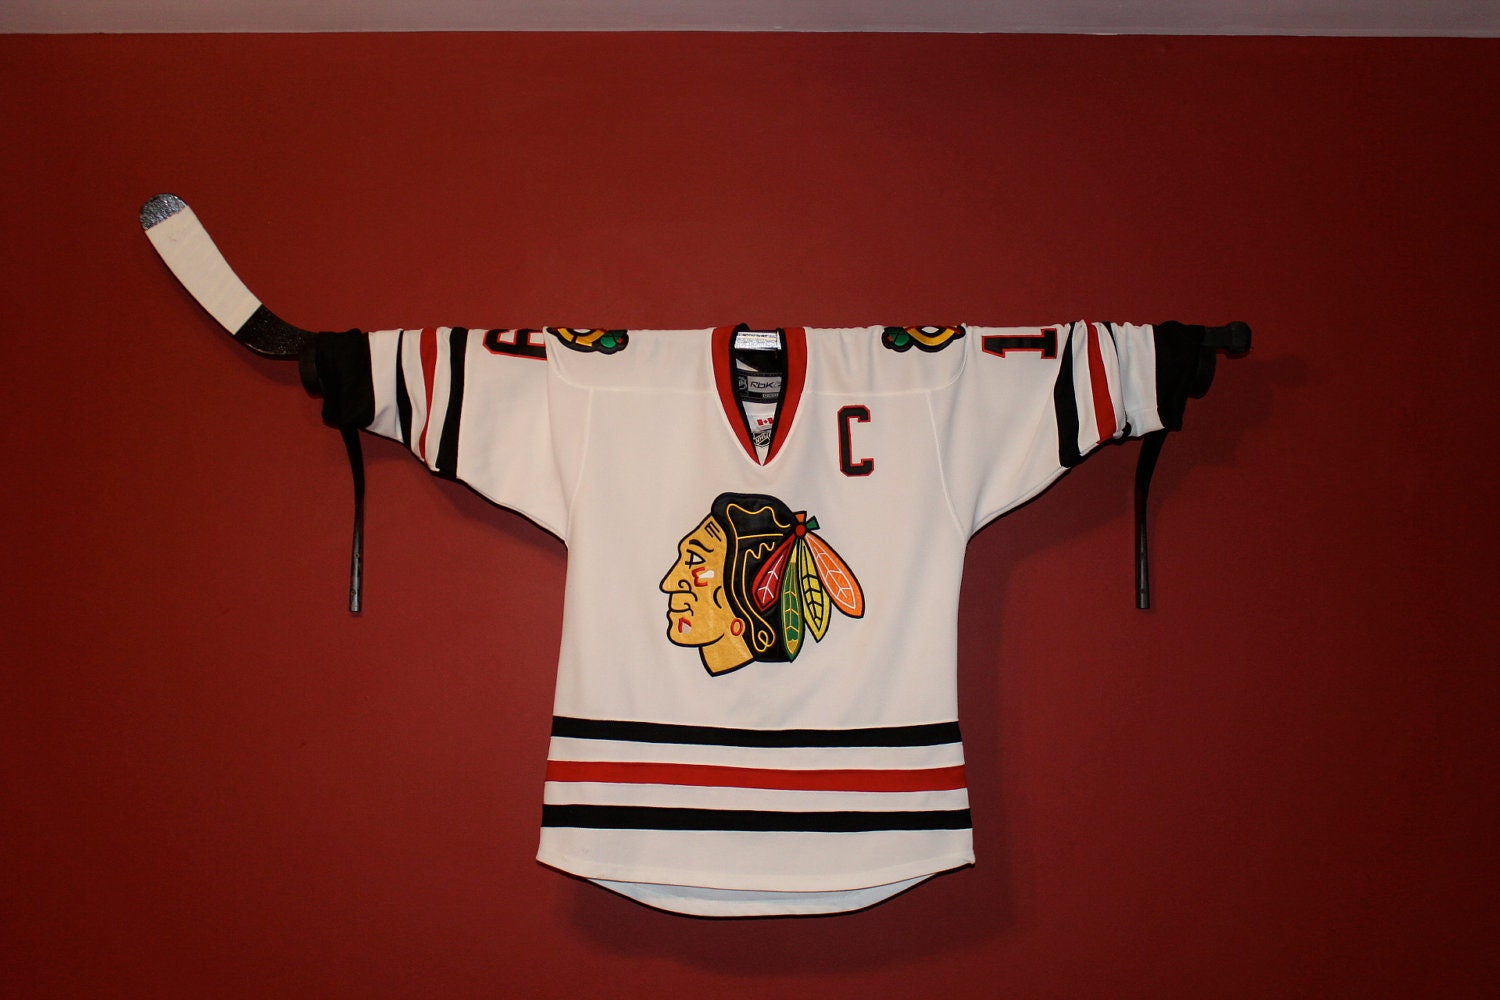 Hockey Valance Holder Jersey Display Or Stick Display